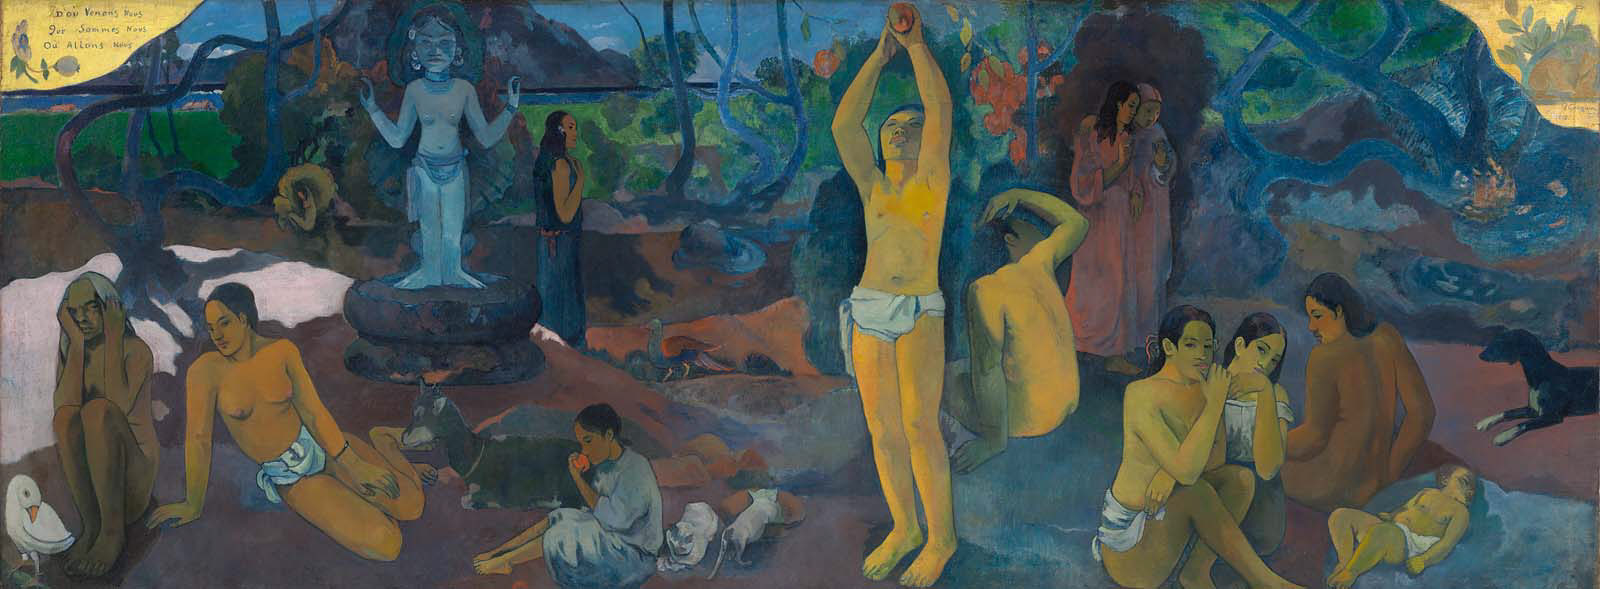 Paul Gauguin - Where Do We Come From? What Are We? Where Are We Going? 1897